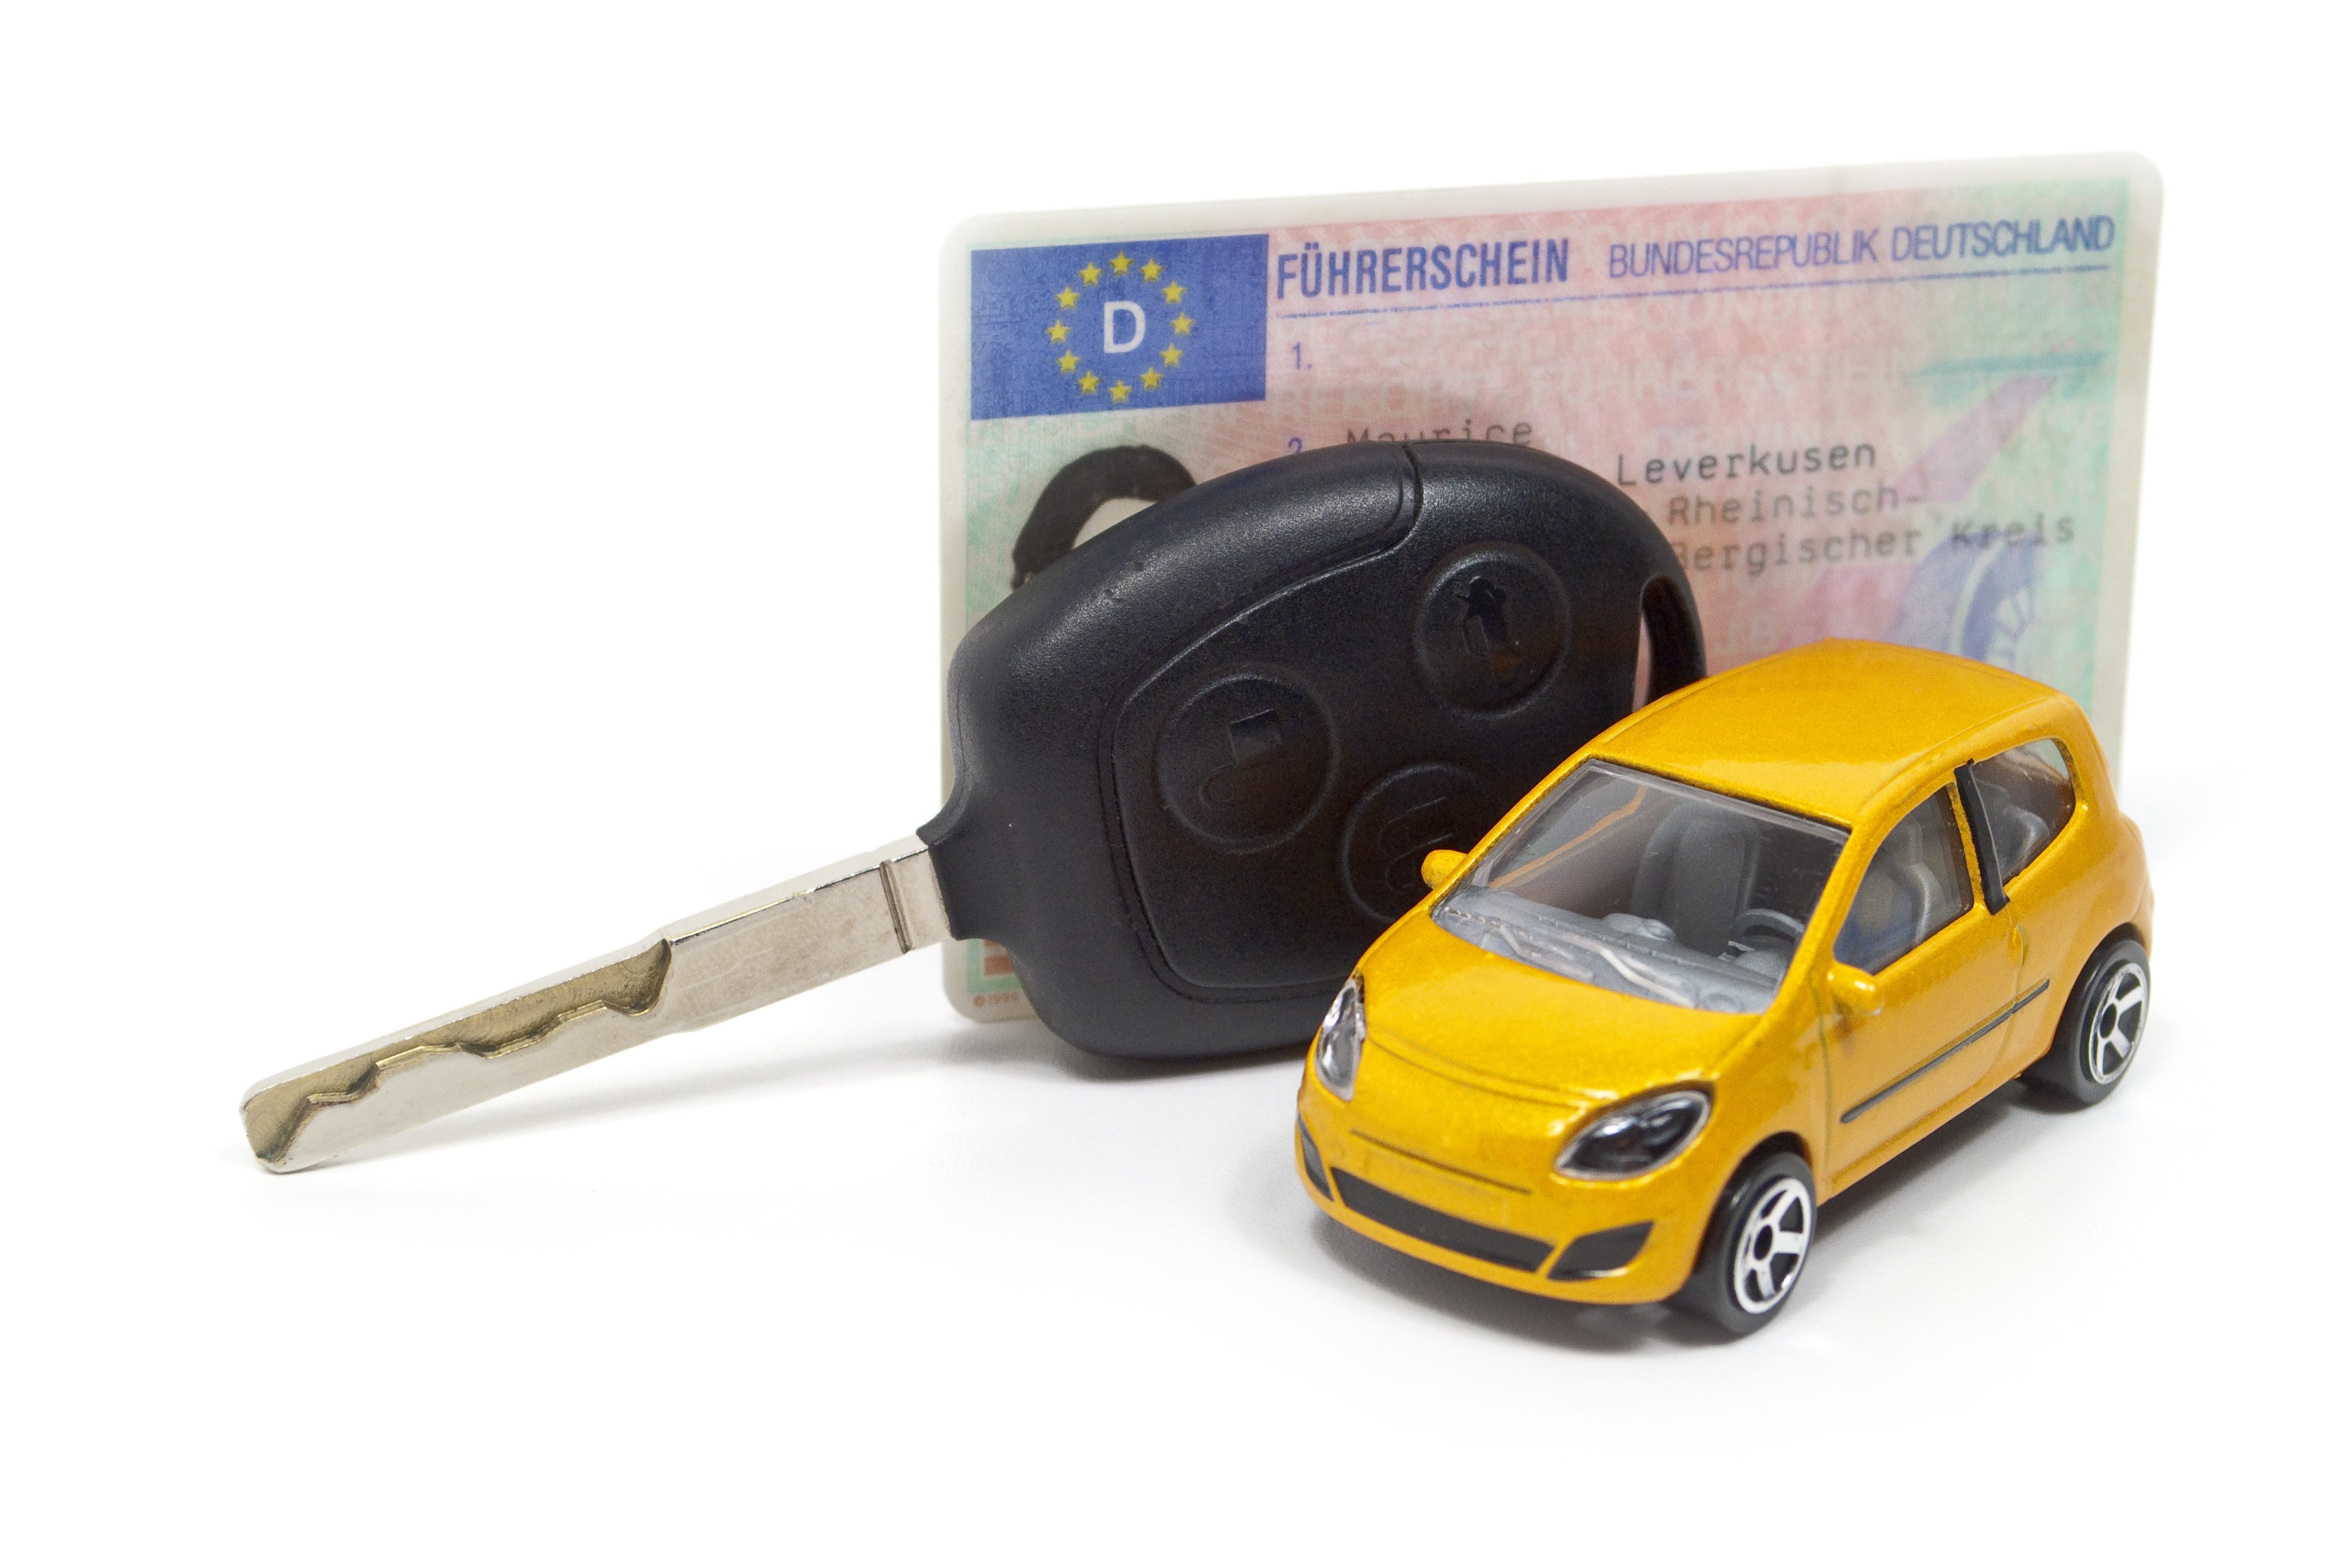 Driver's license exchange